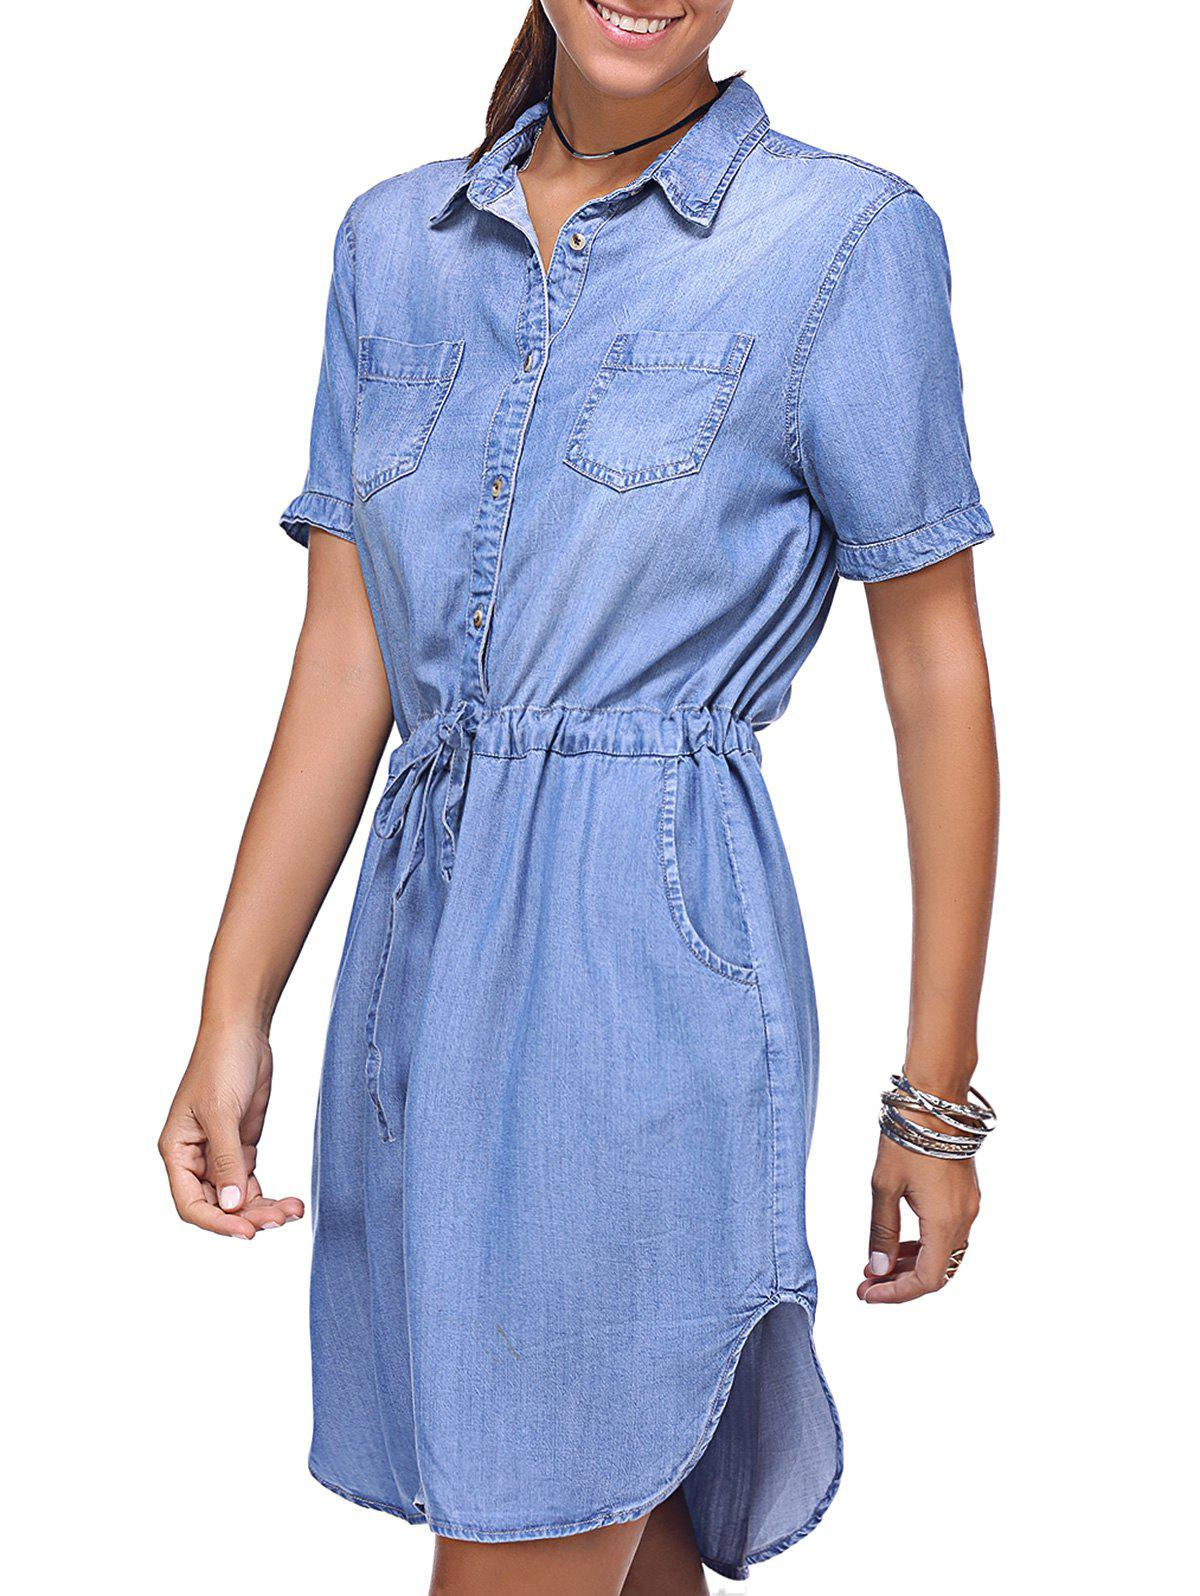 Stylish Women's Shirt Collar Bleach Wash Drawstring  Denim Dress - DENIM BLUE ONE SIZE(FIT SIZE XS TO M)